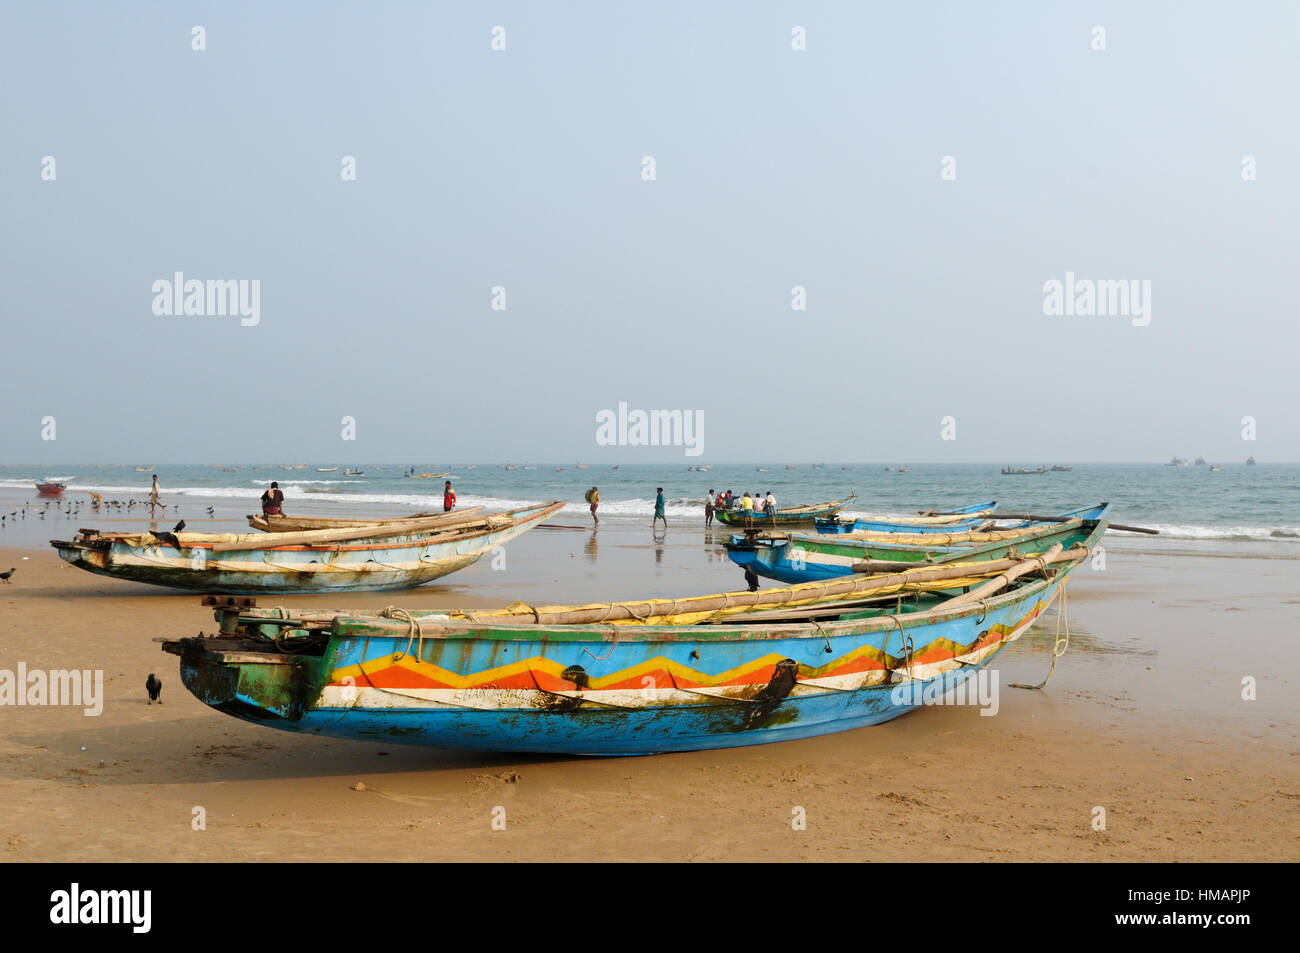 Fishermen boat on a sandy beach in Orissa, India Stock Photo